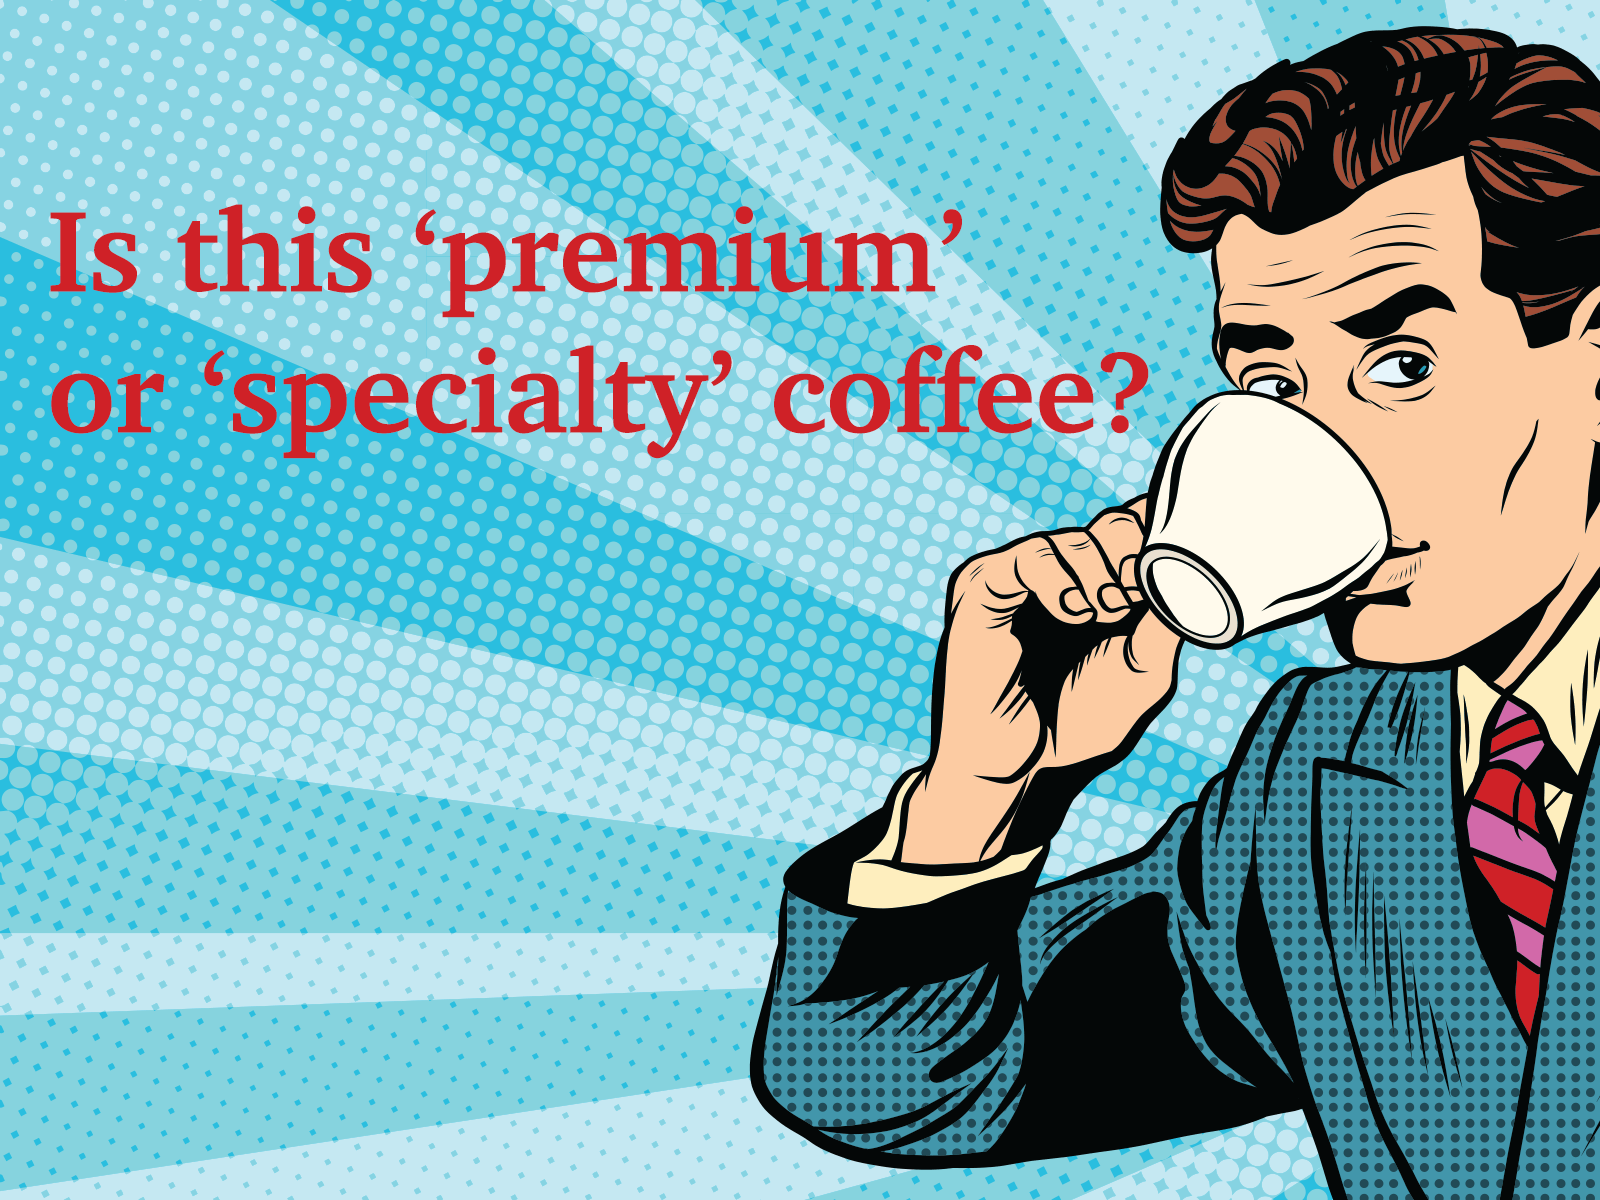 Difference between premium coffee and specialty coffee